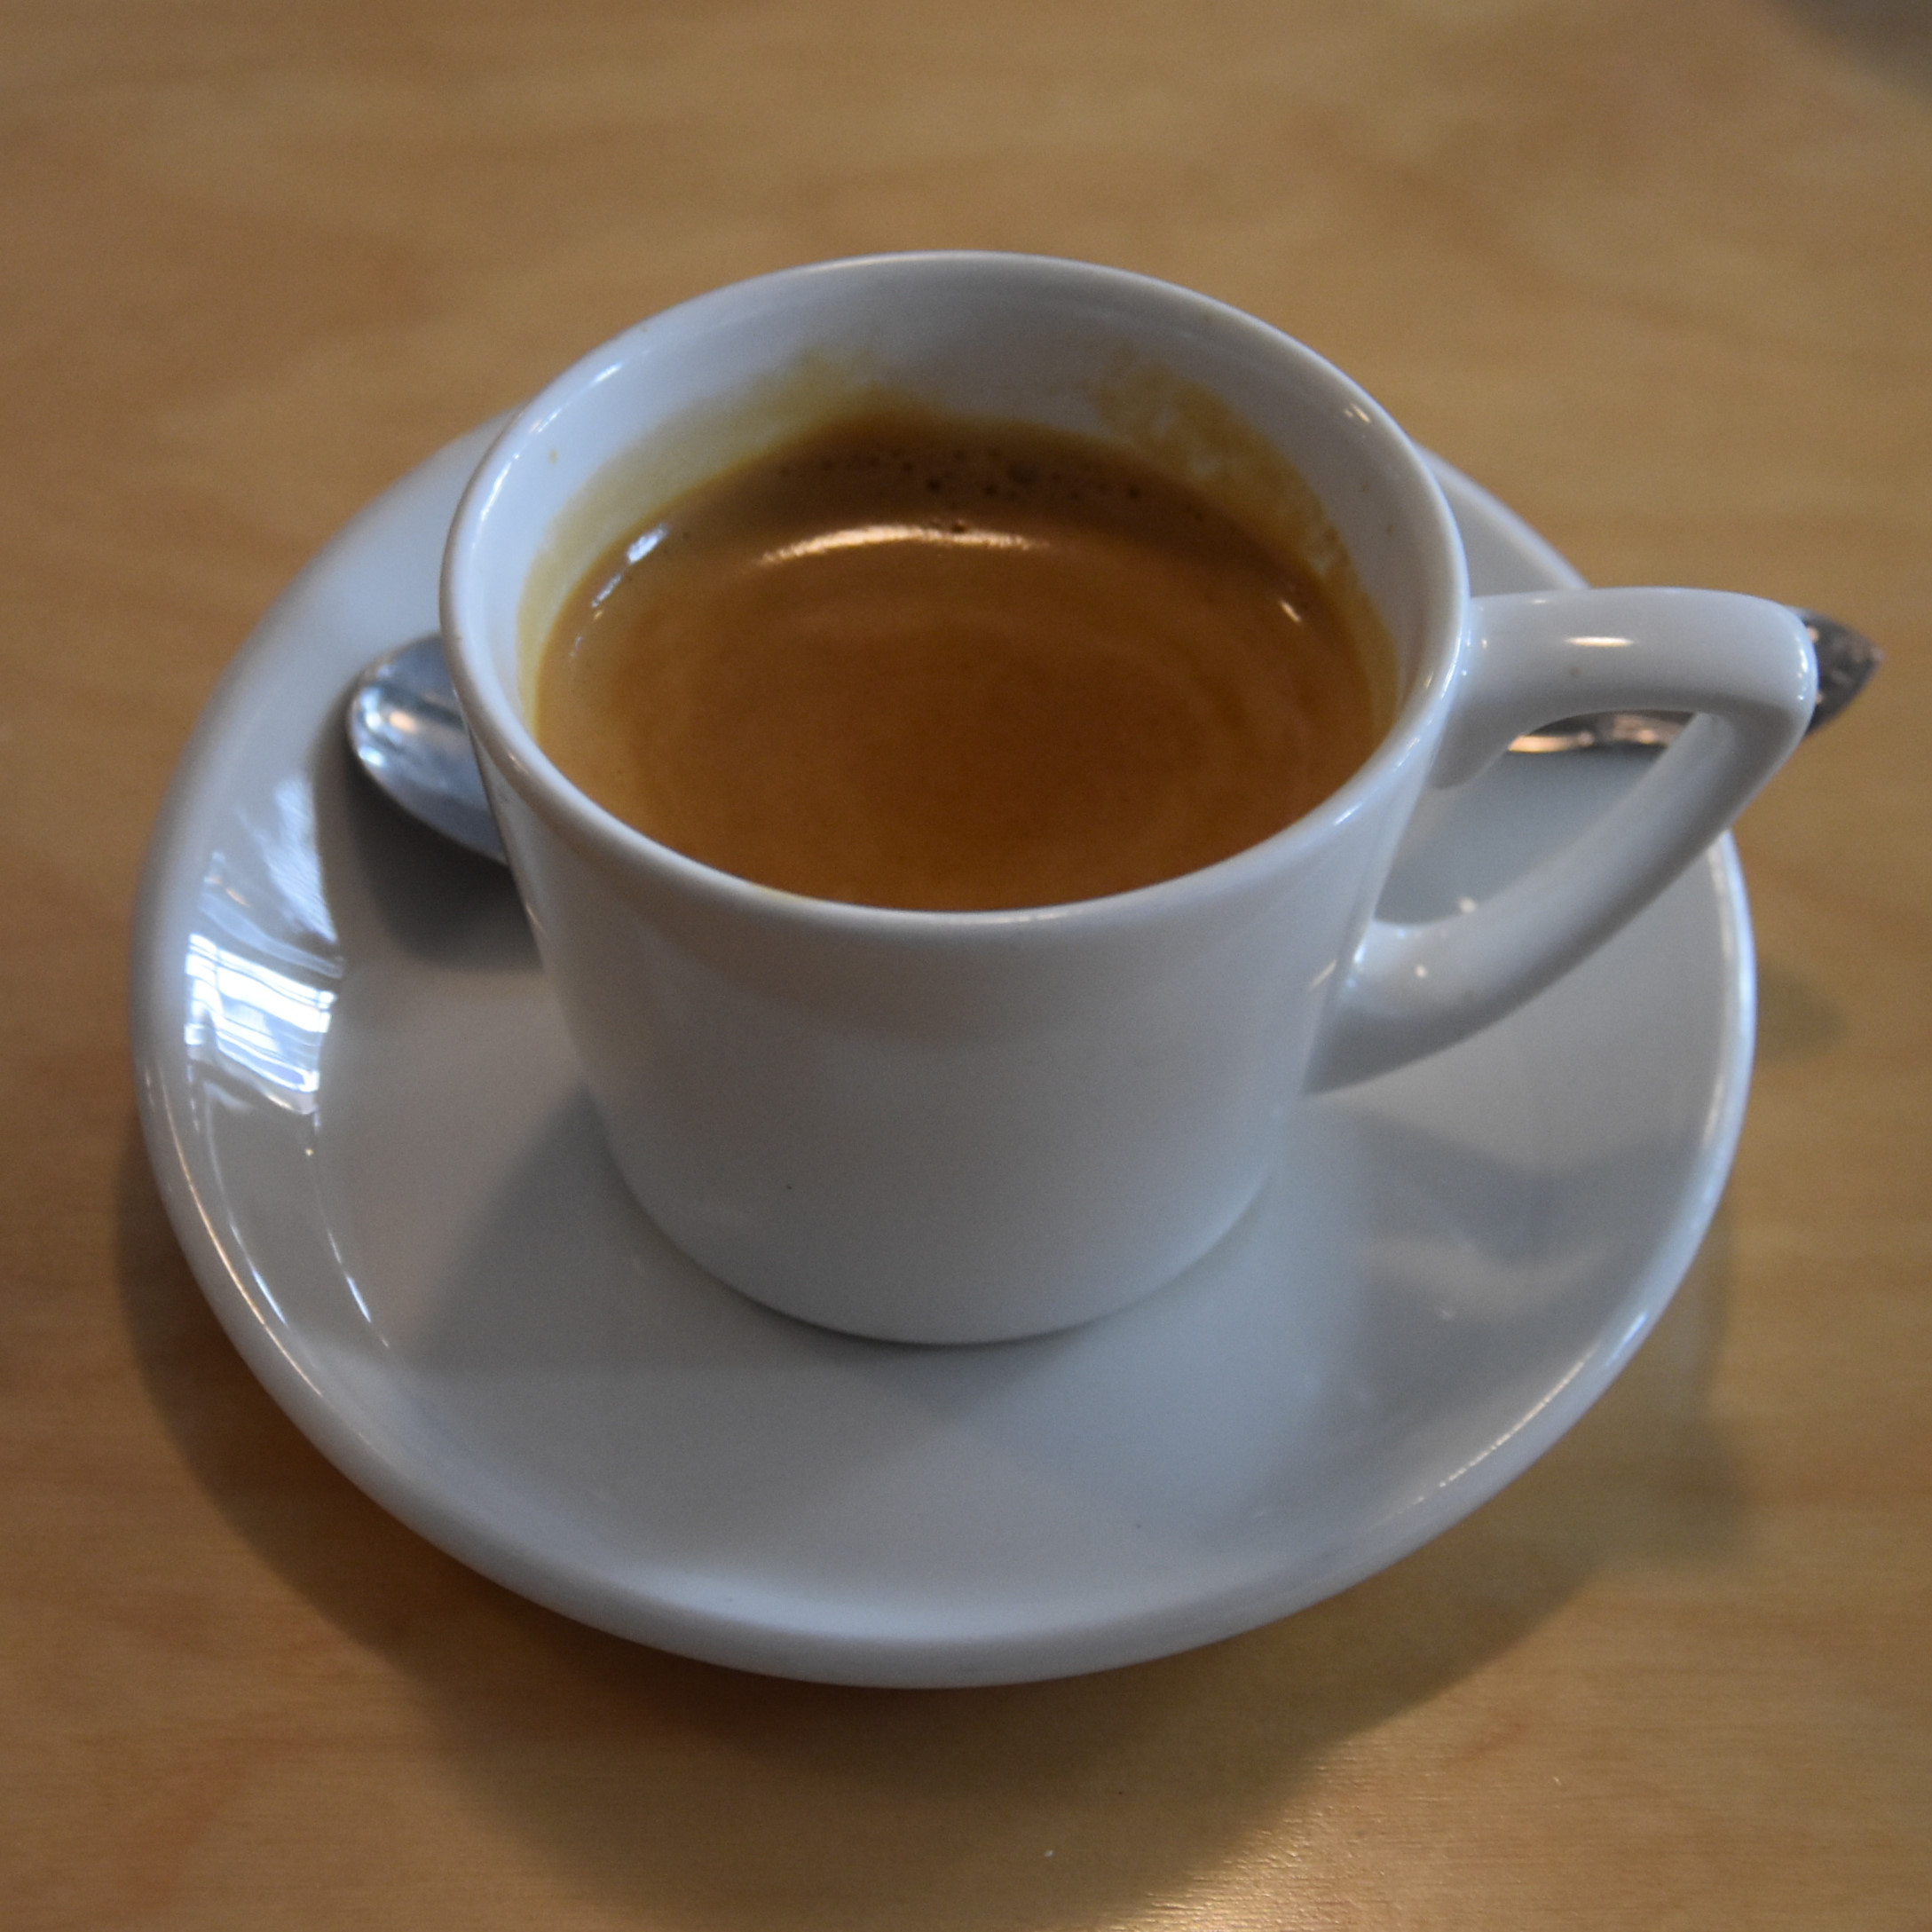 An espresso, made with Panna's bespoke house blend, served in one of its quirky white espresso cups.